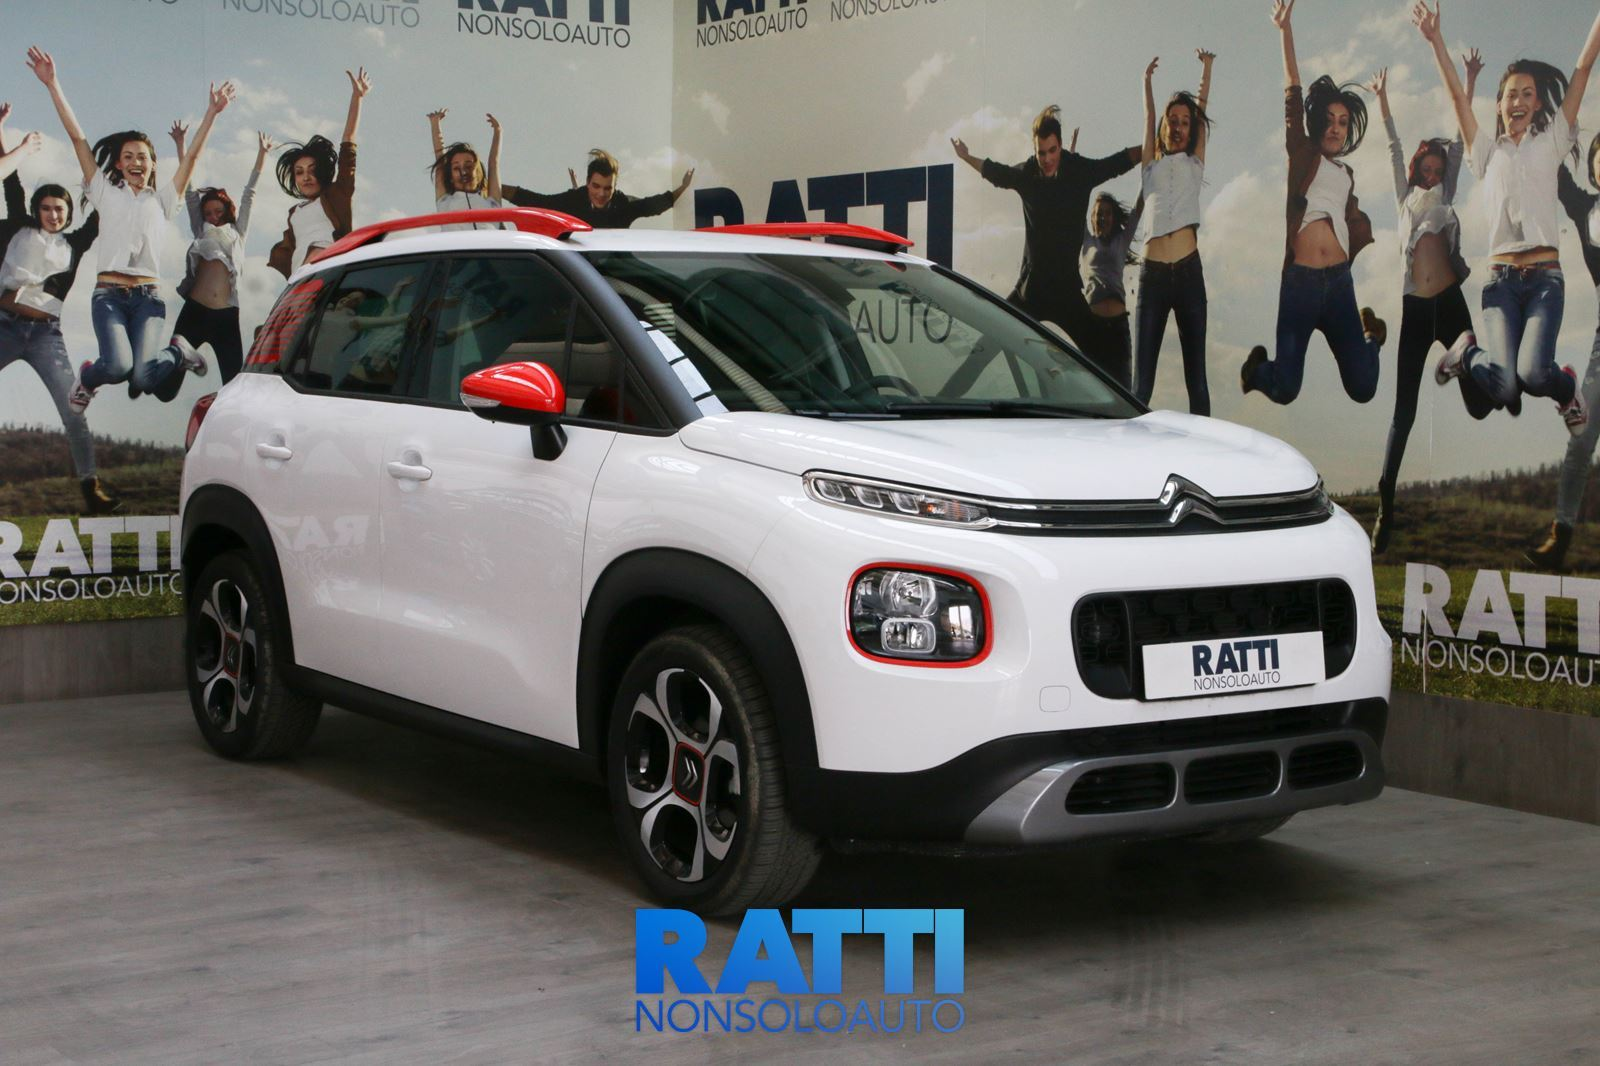 CITROEN C3 Aircross BlueHDi 1.6 100CV Shine + Active Safety Brake Natural White  cambio Manuale Diesel Aziendale station wagon 5 porte 5 posti EURO 6